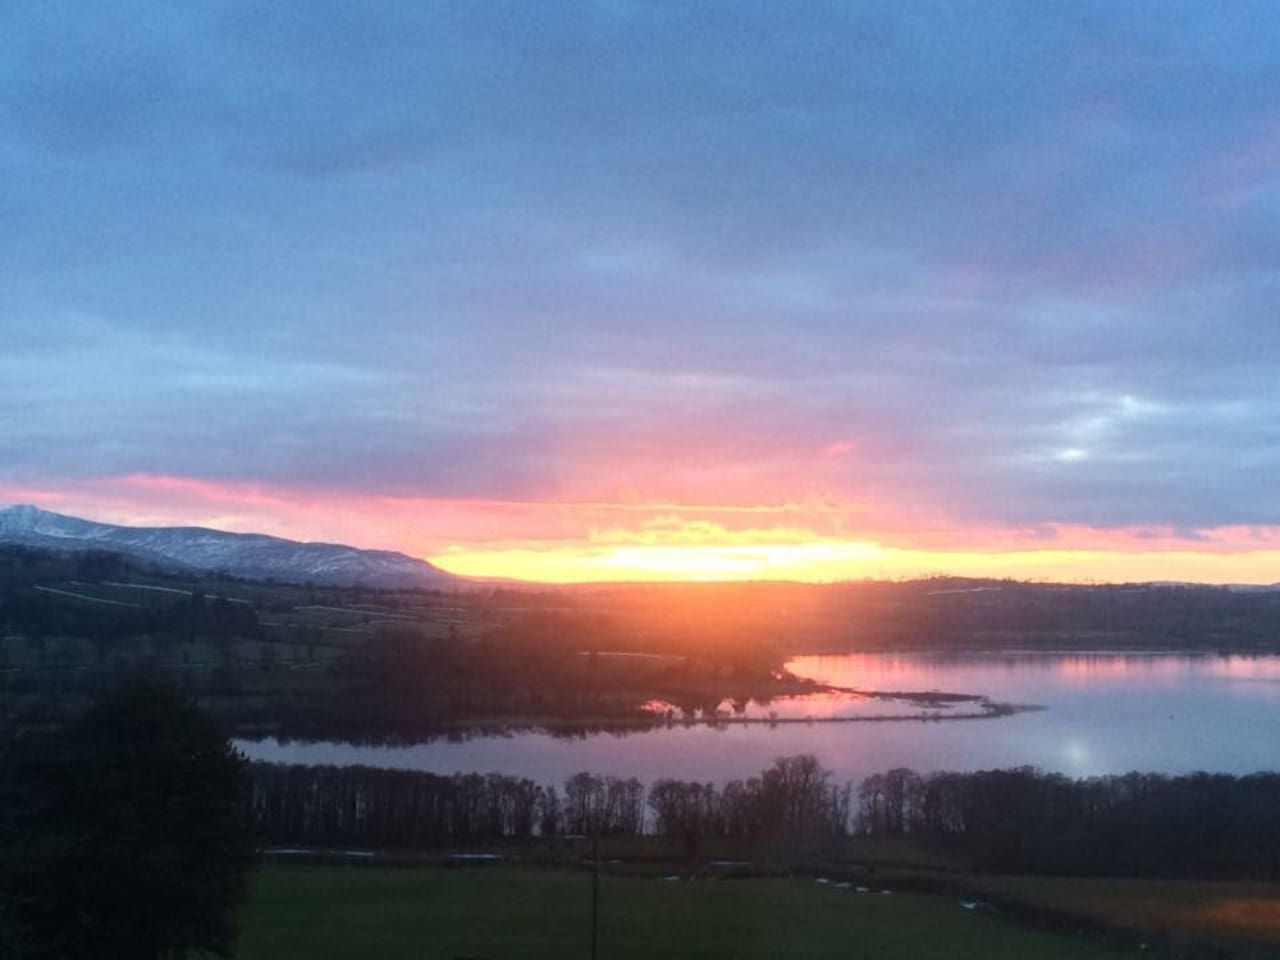 Sunset over Llangorse as seen from glamping hut